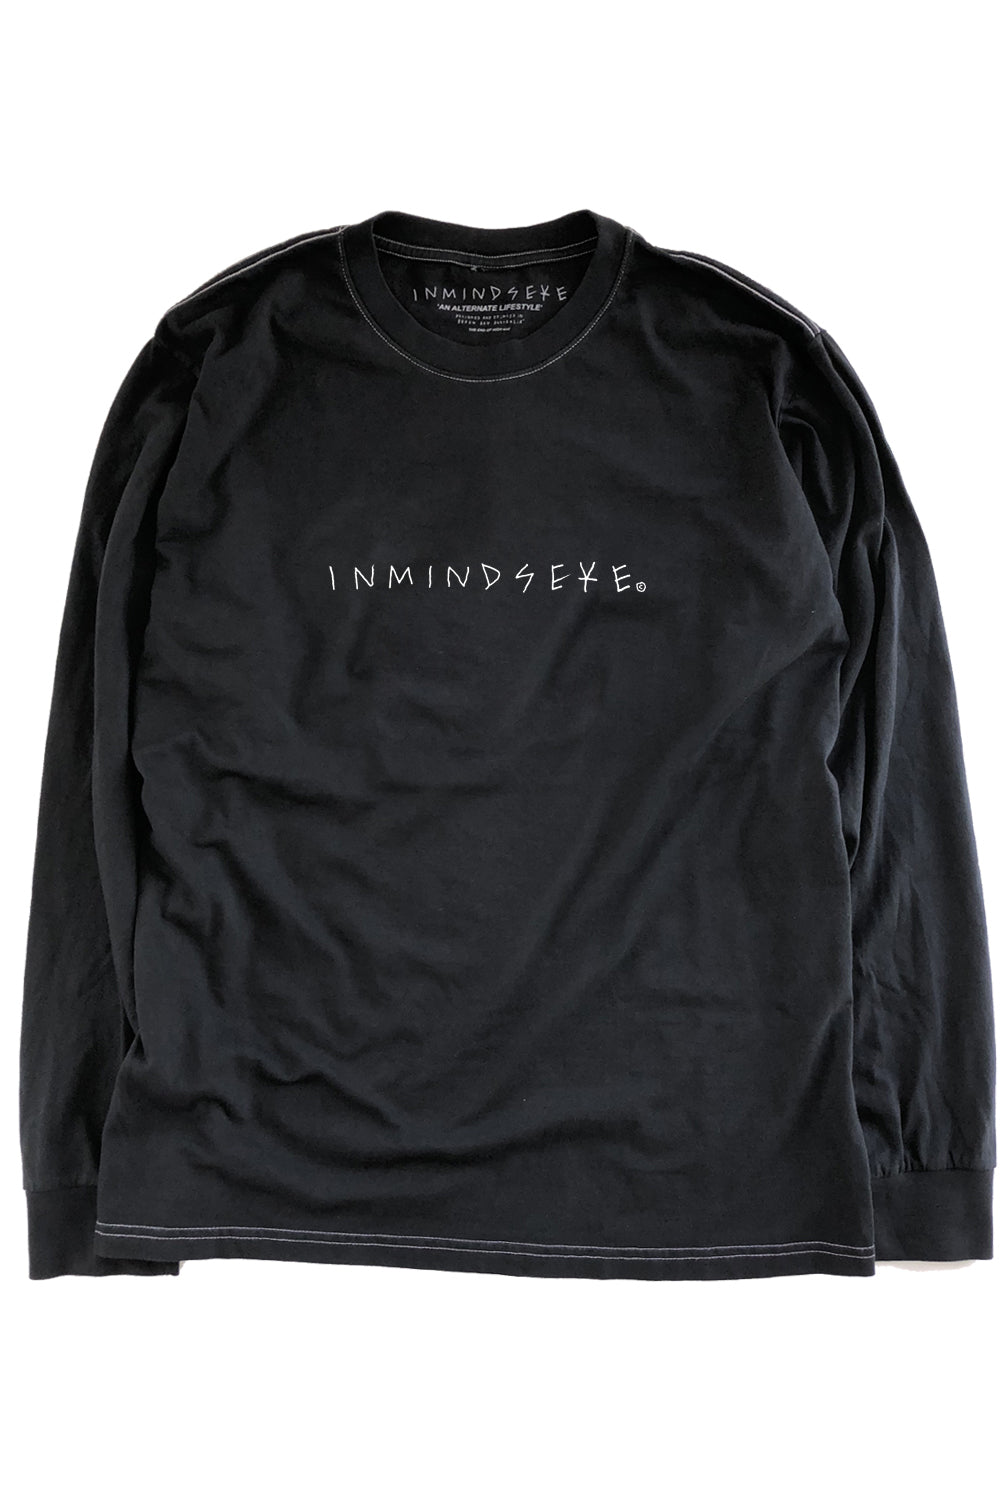 the BRANDED L/S tee / band tee black